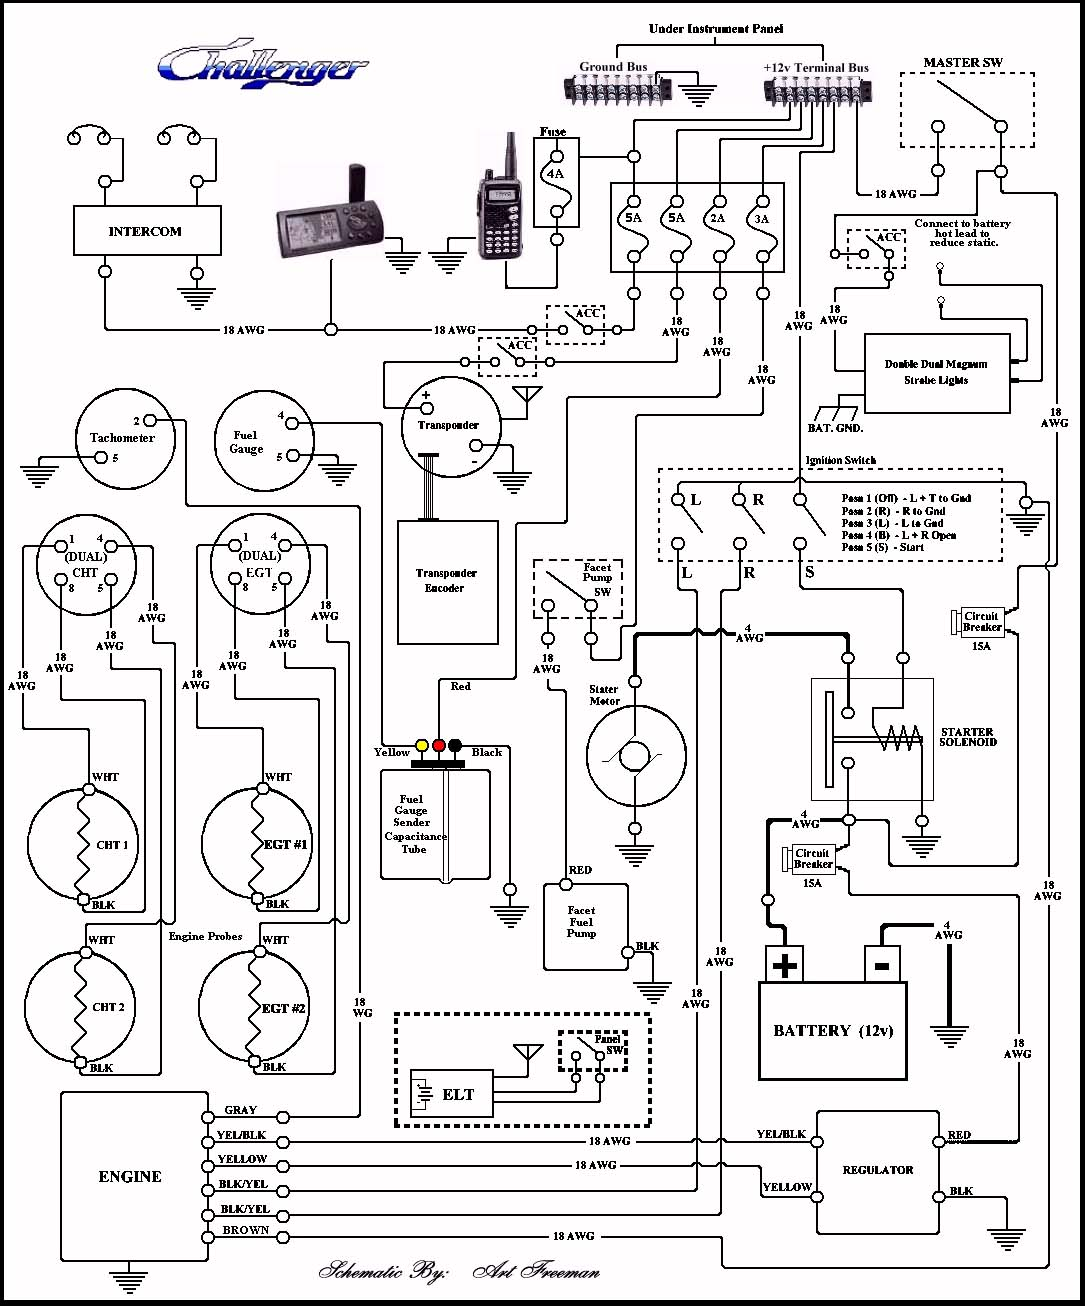 Schem_Analog erie airpark tools downloads challenger wiring diagram at alyssarenee.co